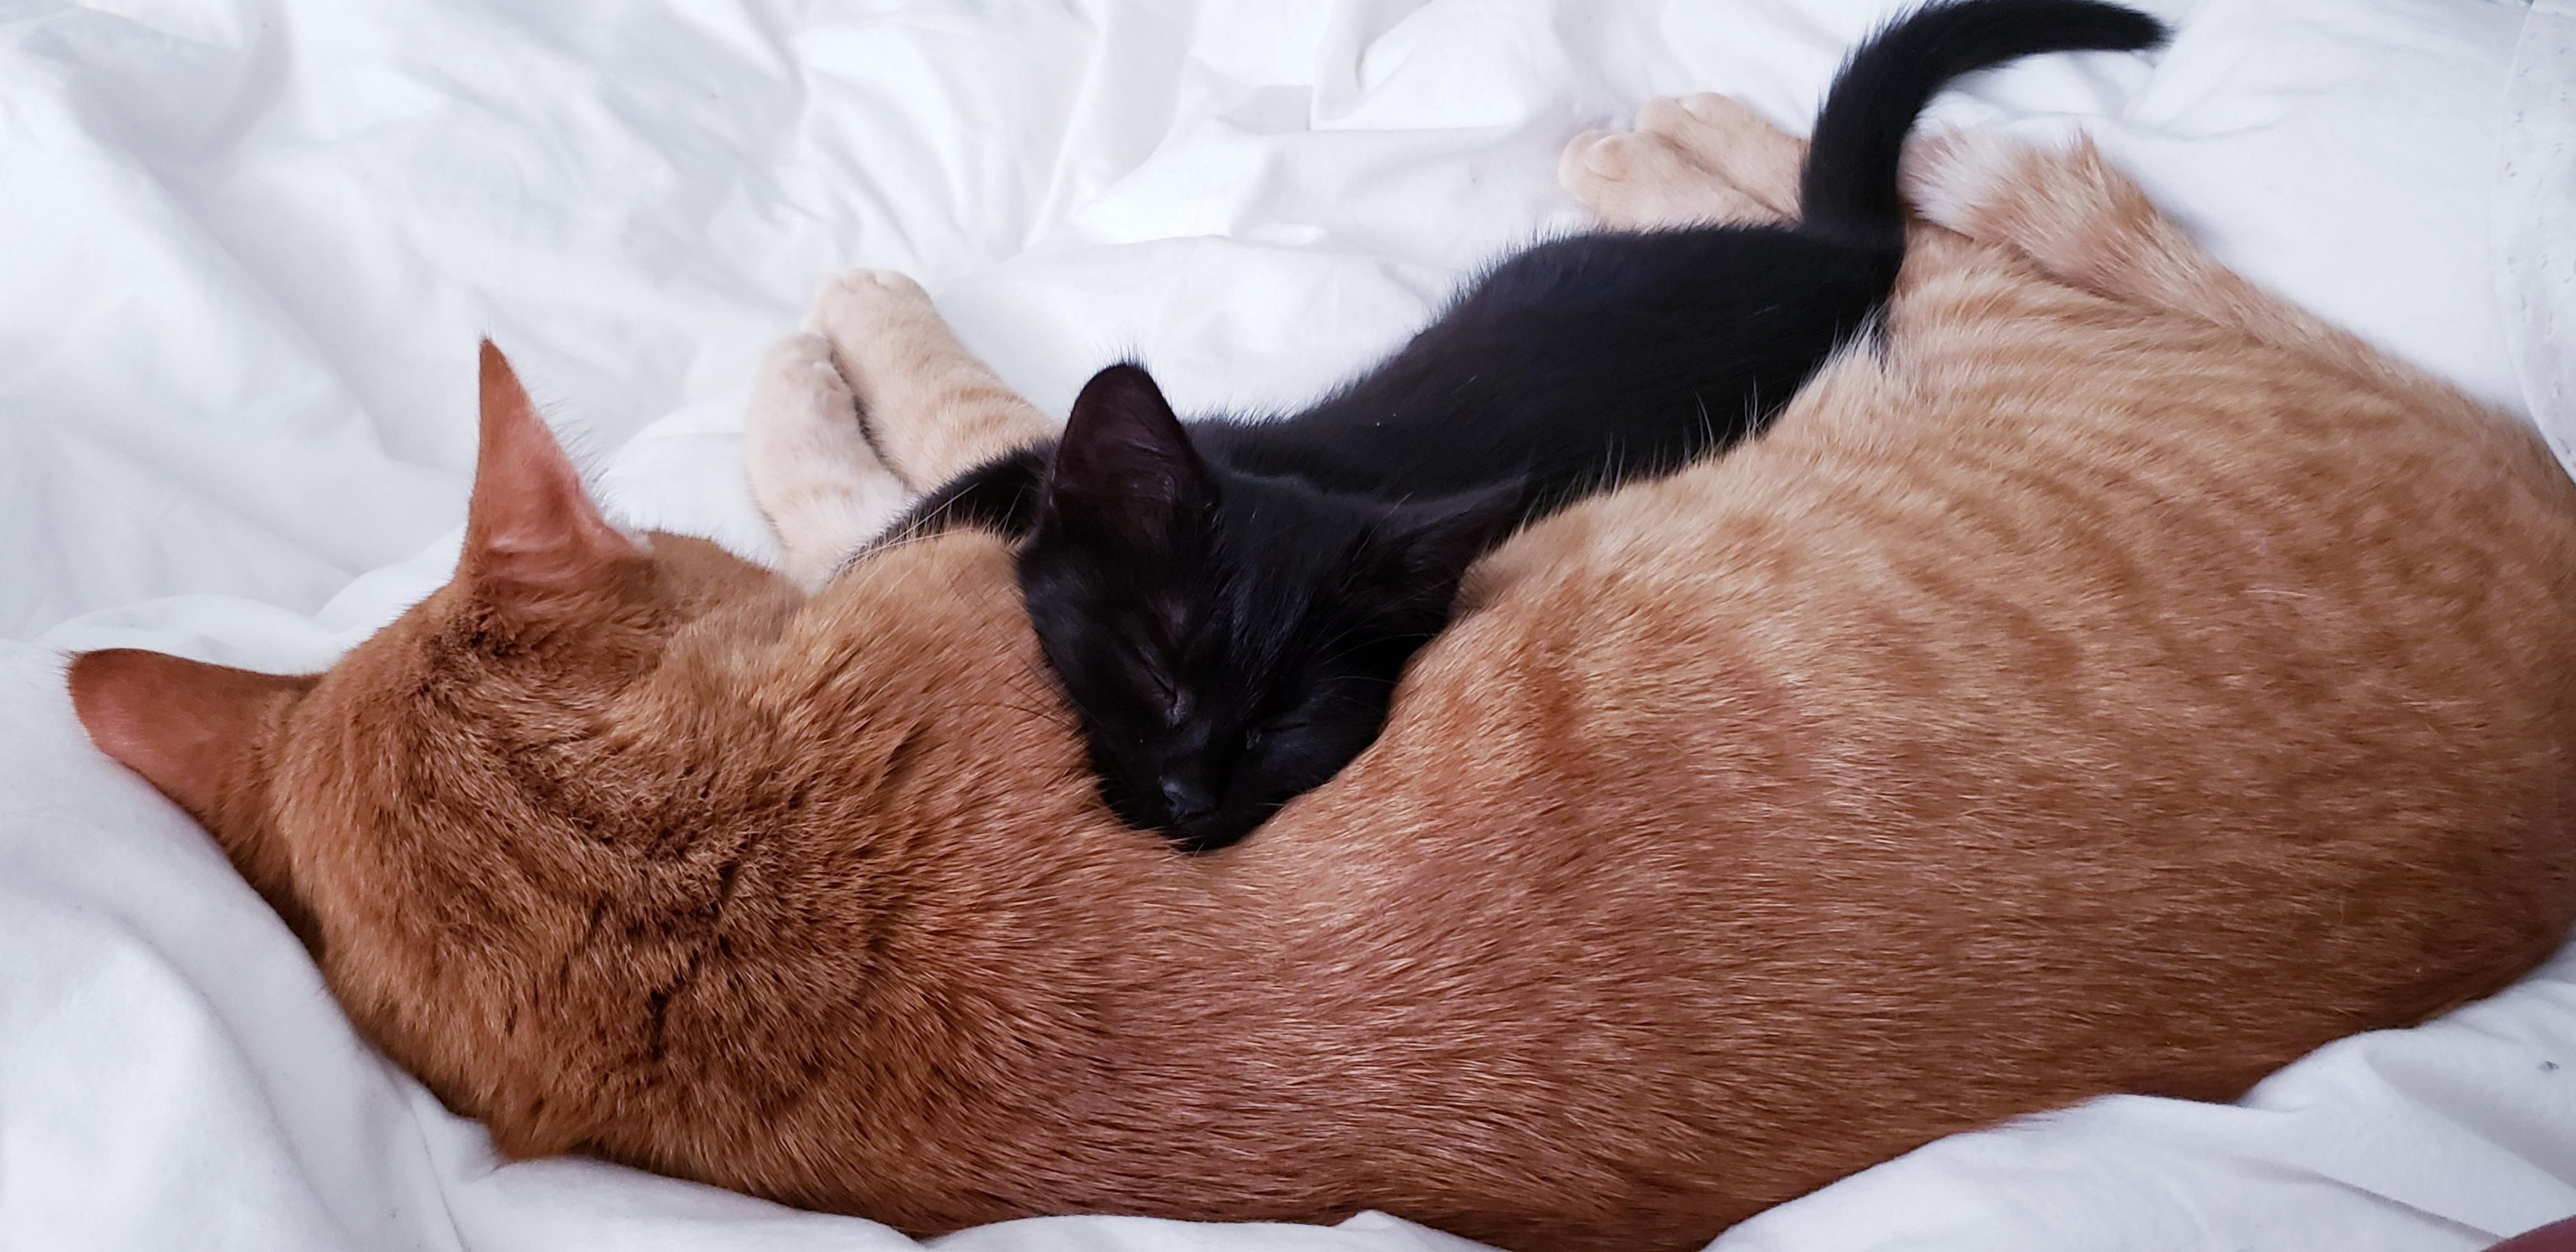 20 Pictures Of Little Kitten And Big Cat Are Finally Snuggle Buddies Aww Cute Adorable Cute Kitten Pics Little Kittens Kitten Pictures